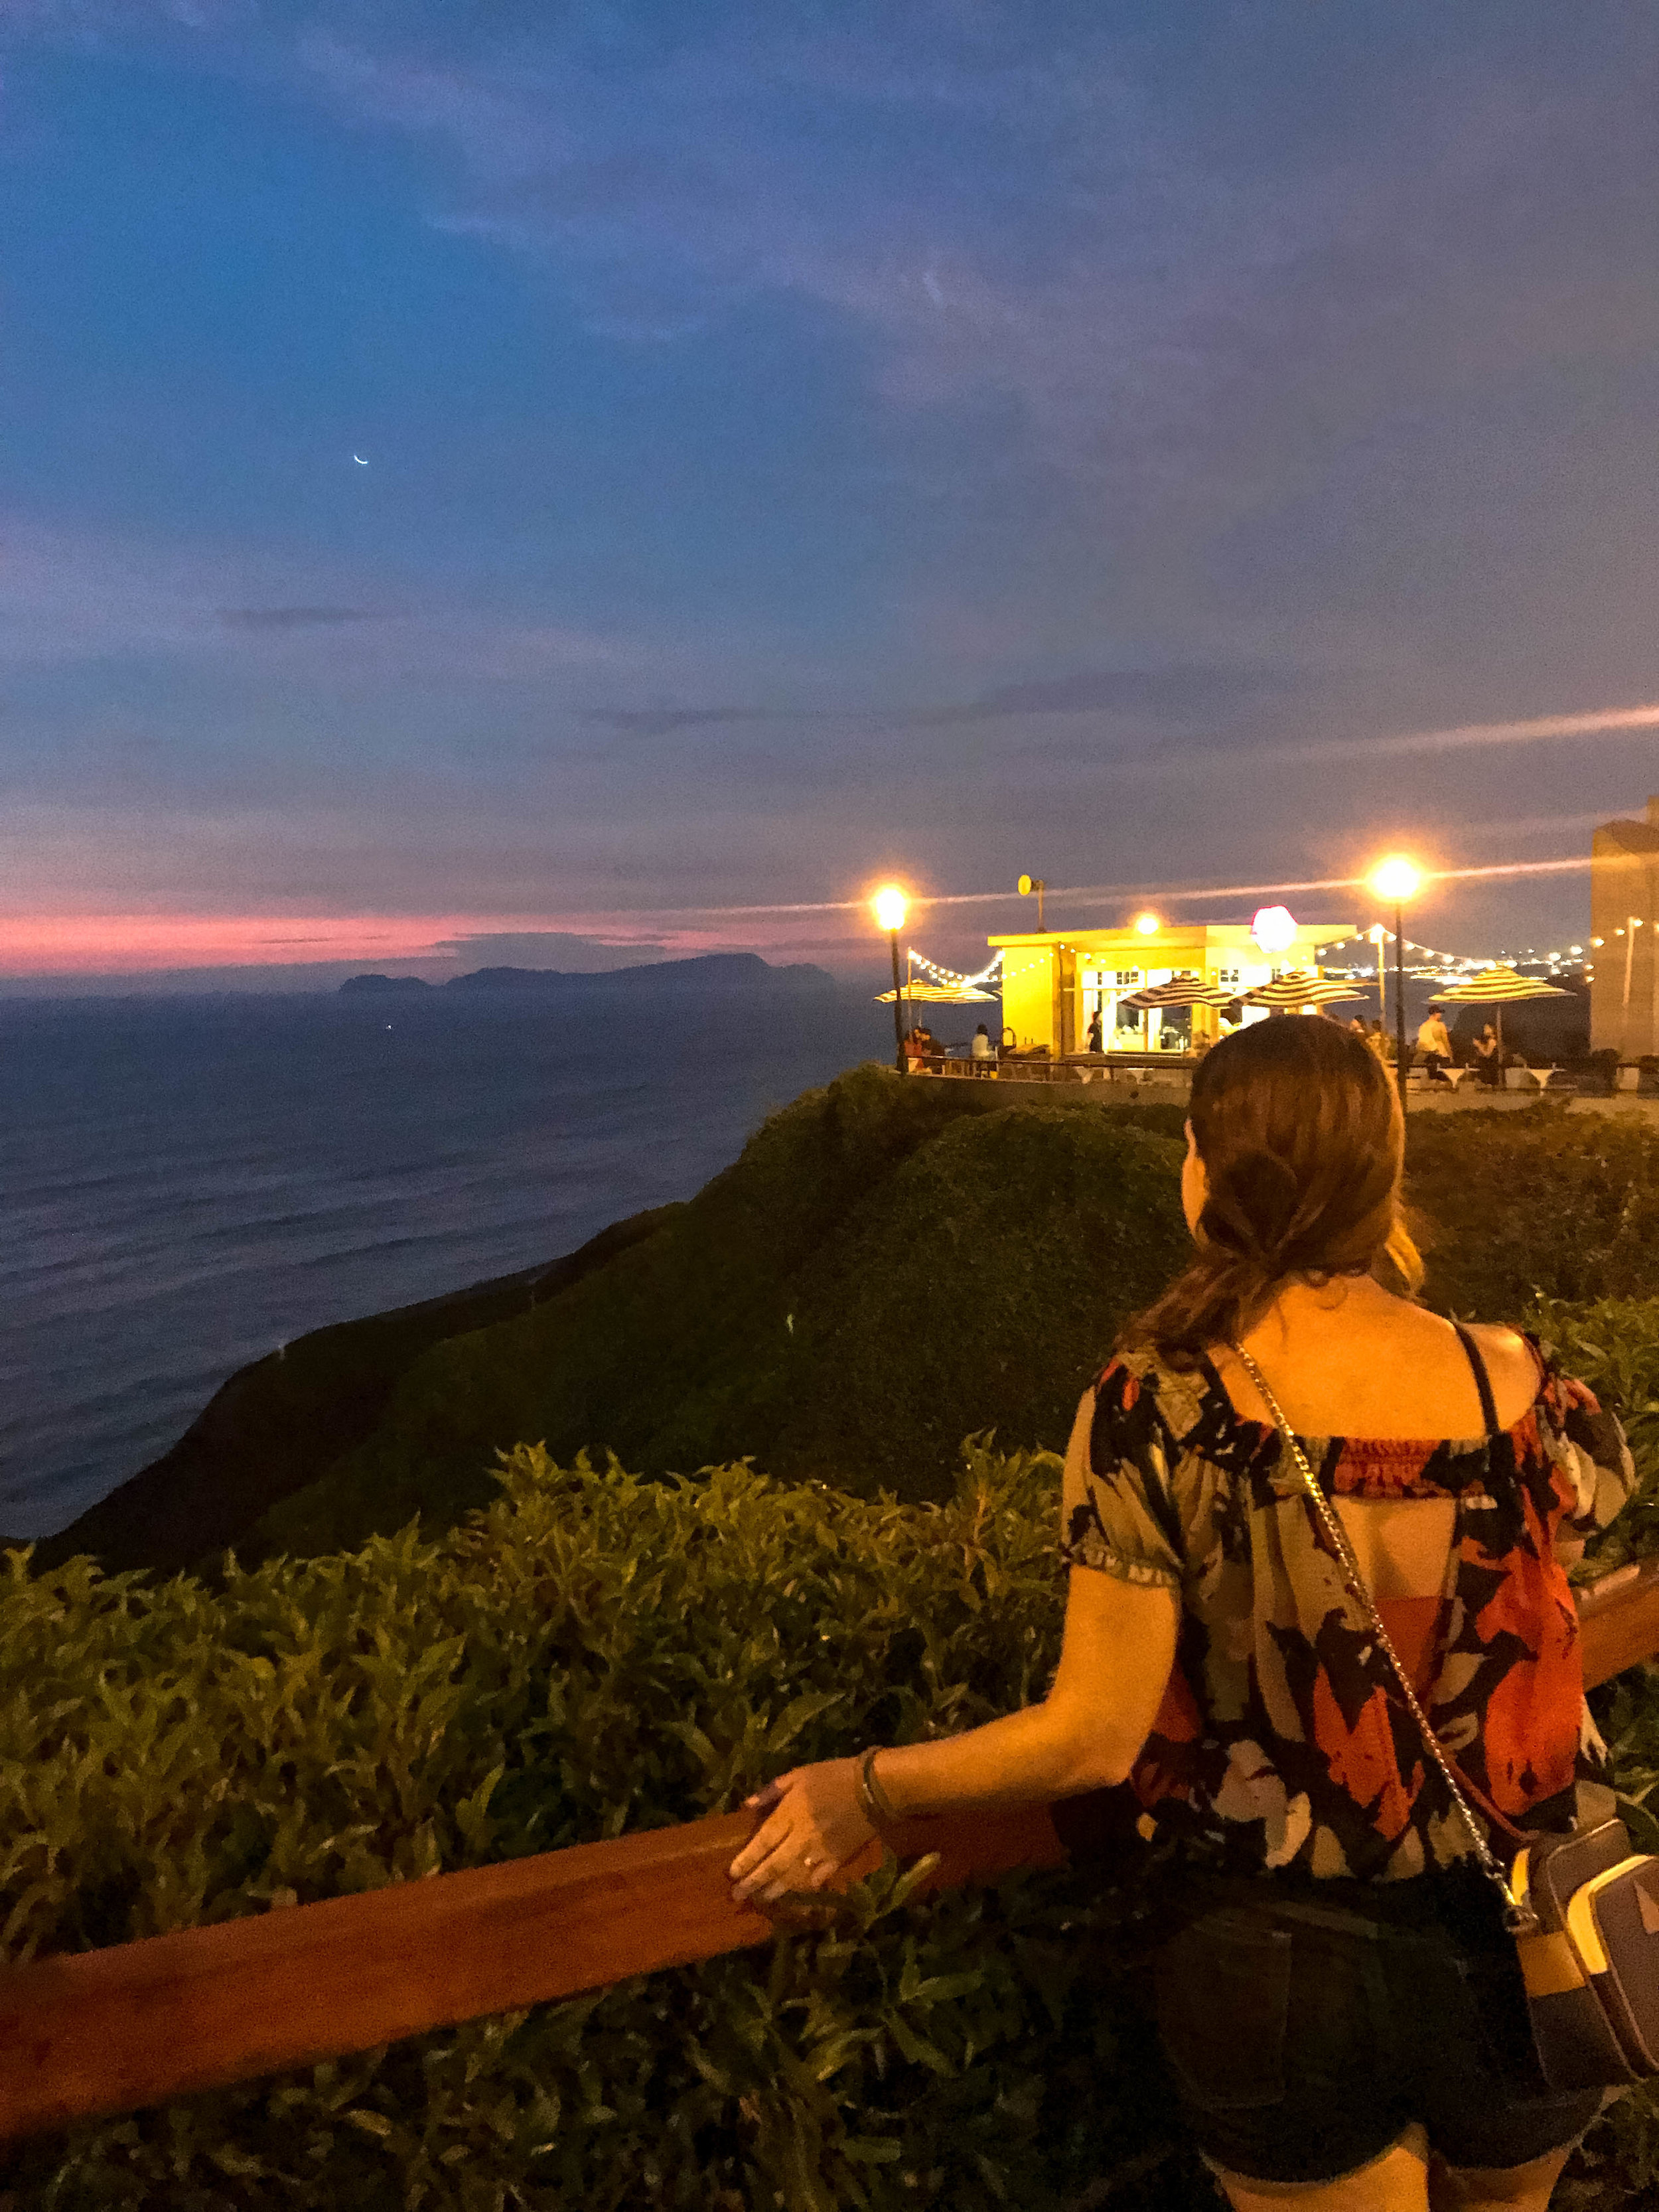 Amazing evening views from Miralfores over the Pacific Ocean